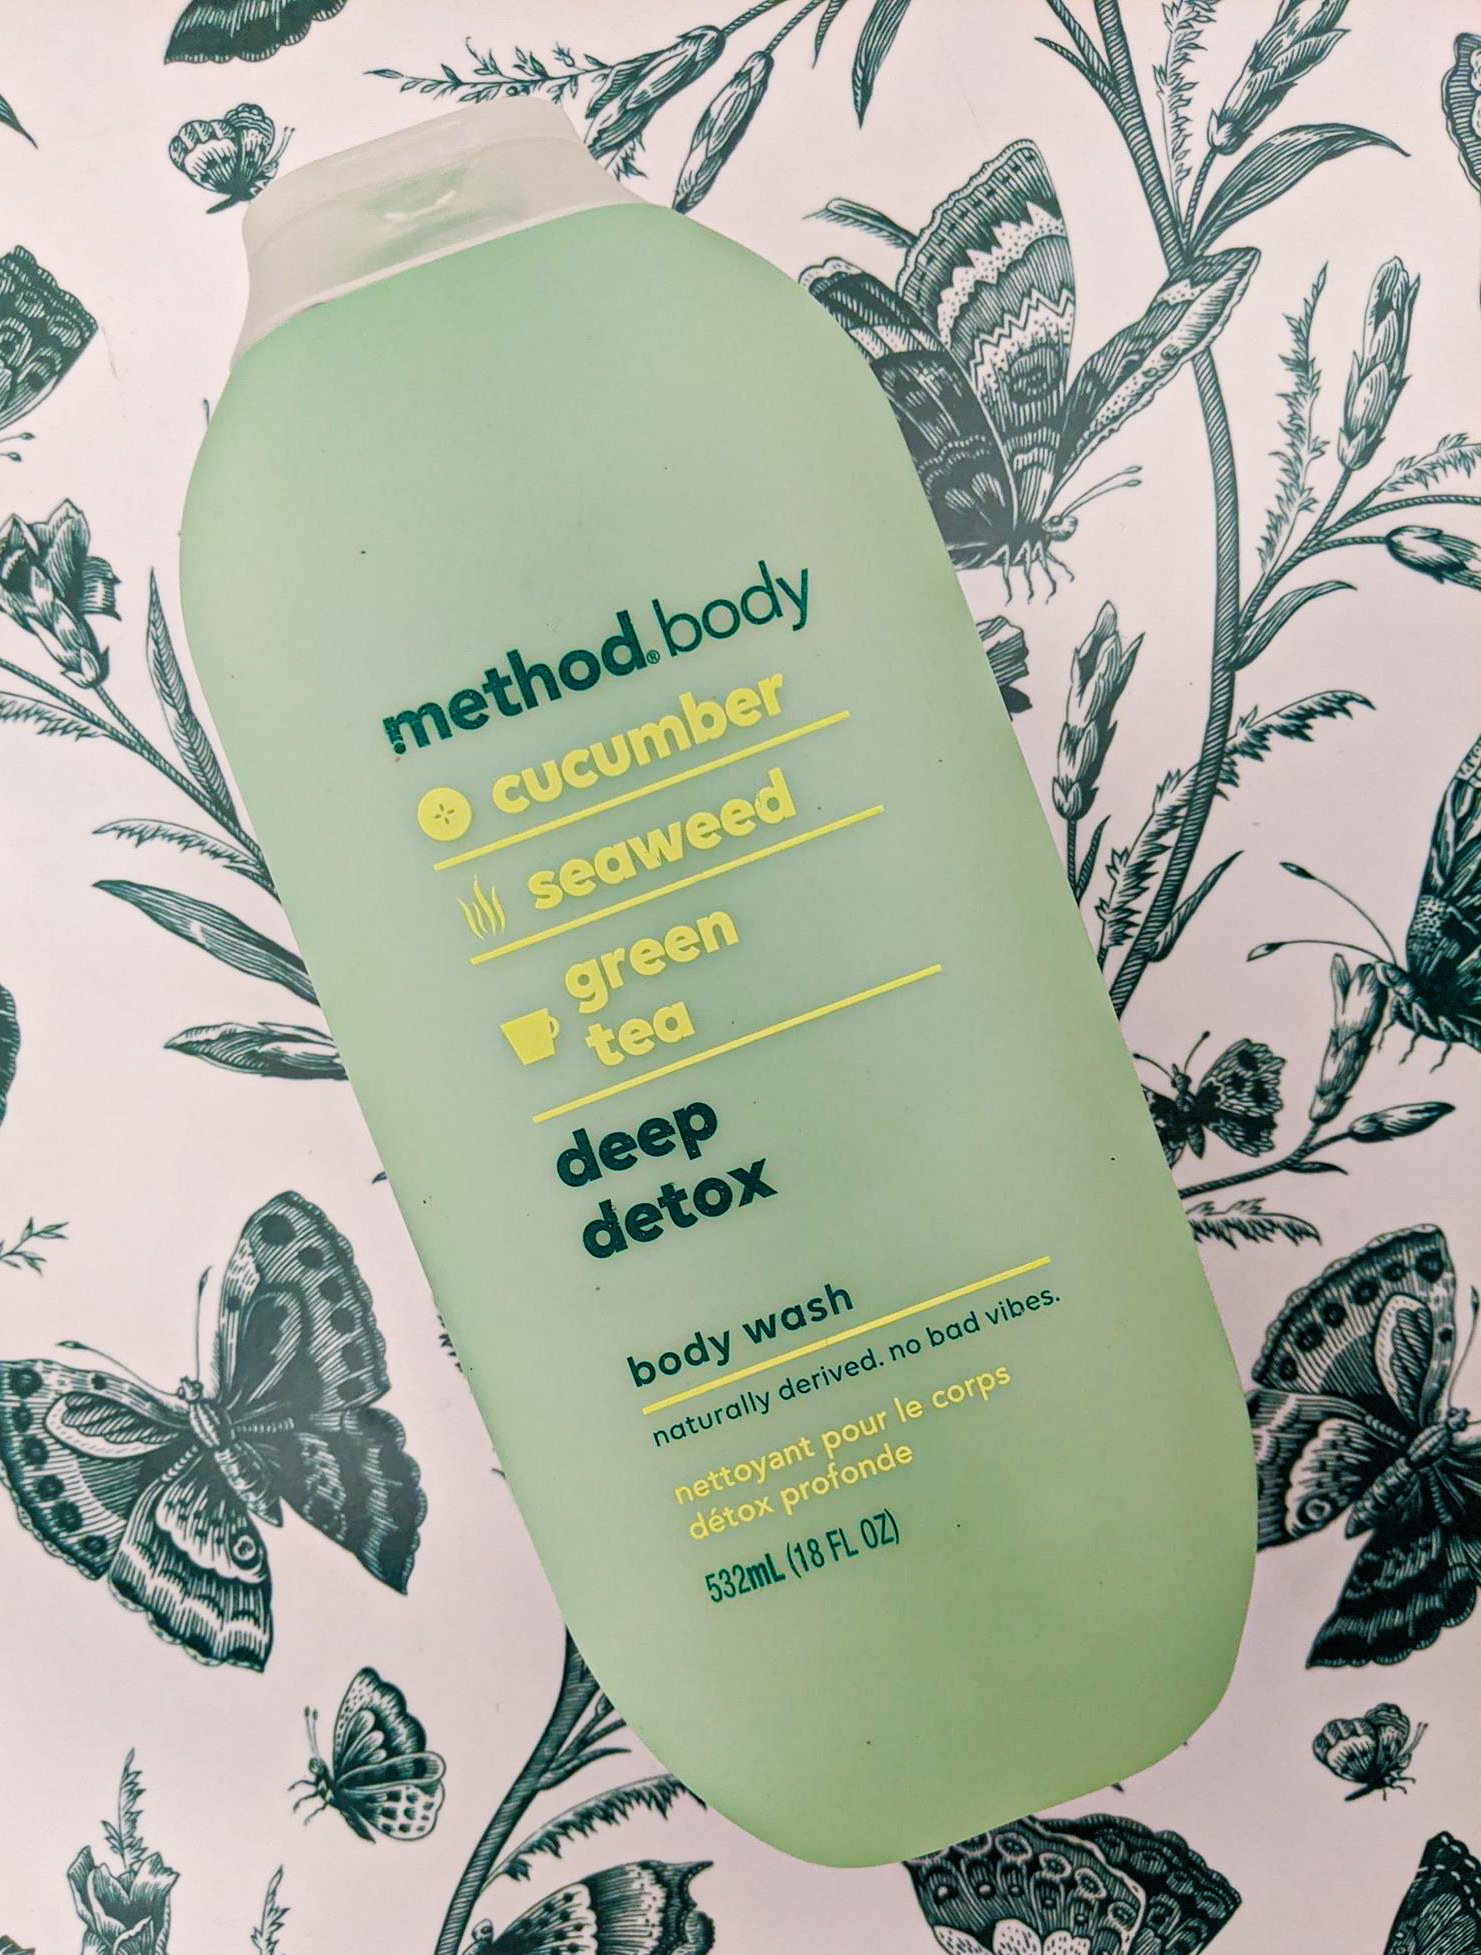 The bottle of body wash against a botanical background with cucumber, seaweed, and green tea listed as ingredients